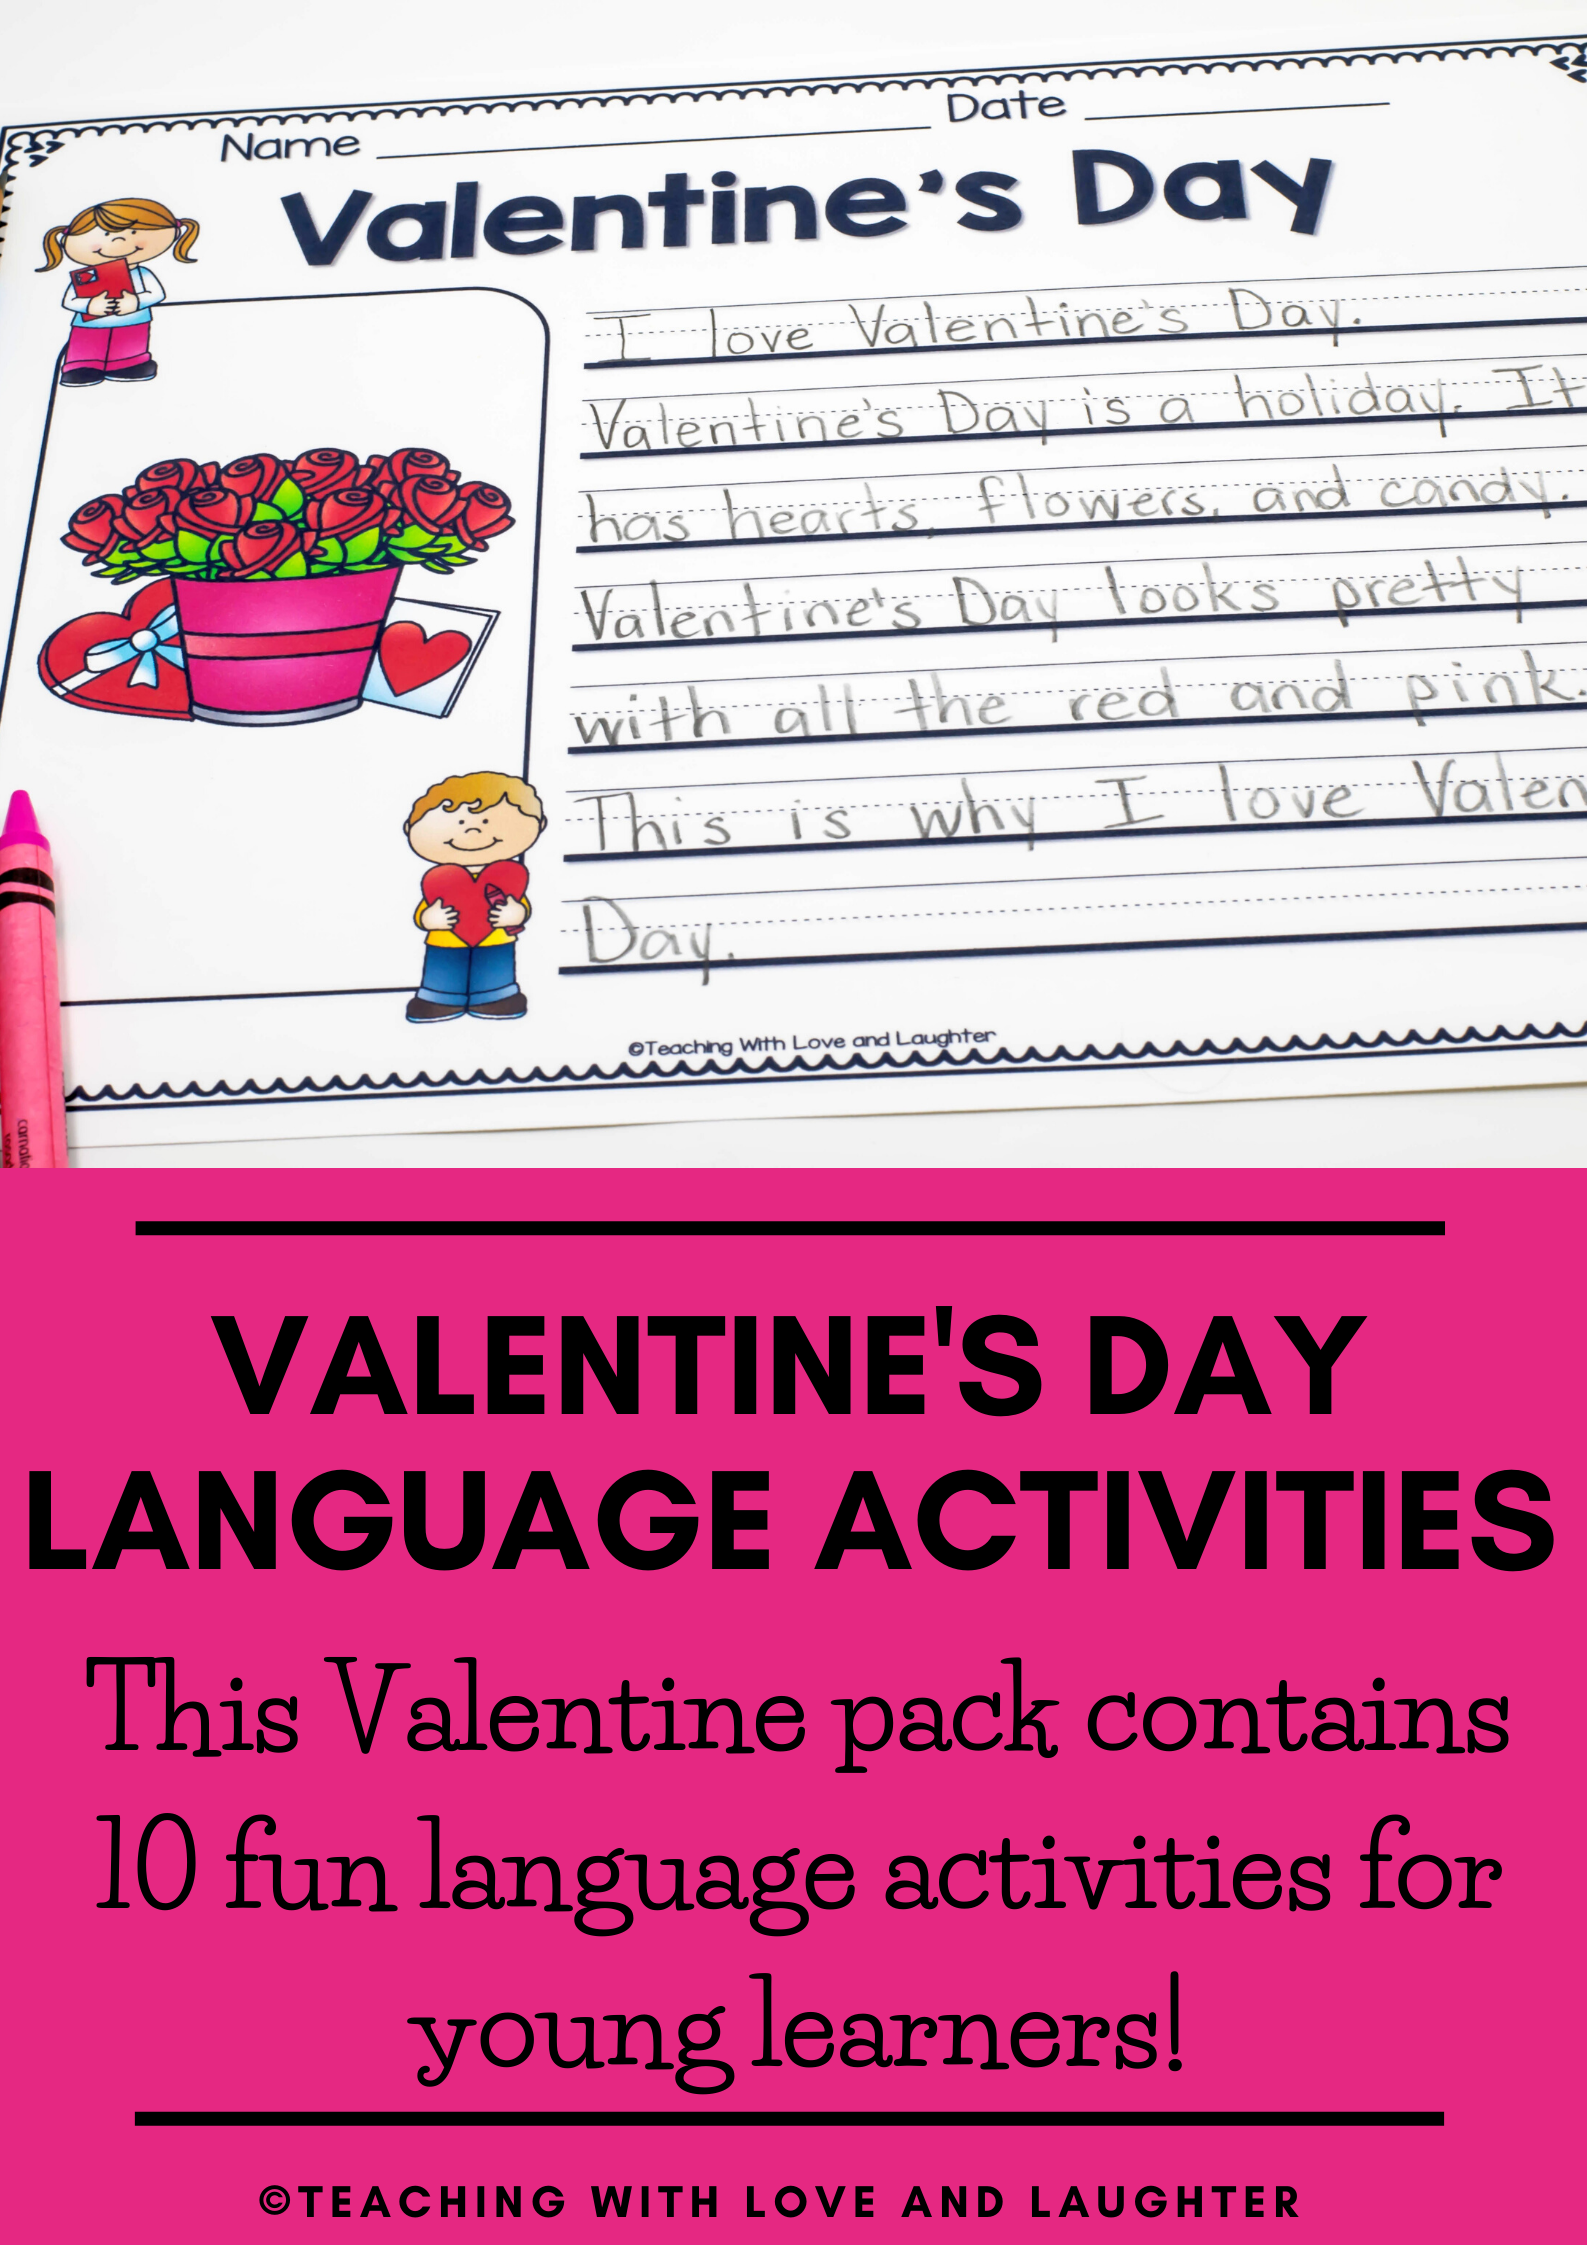 Includes 10 Fun Language Activities To Help Students